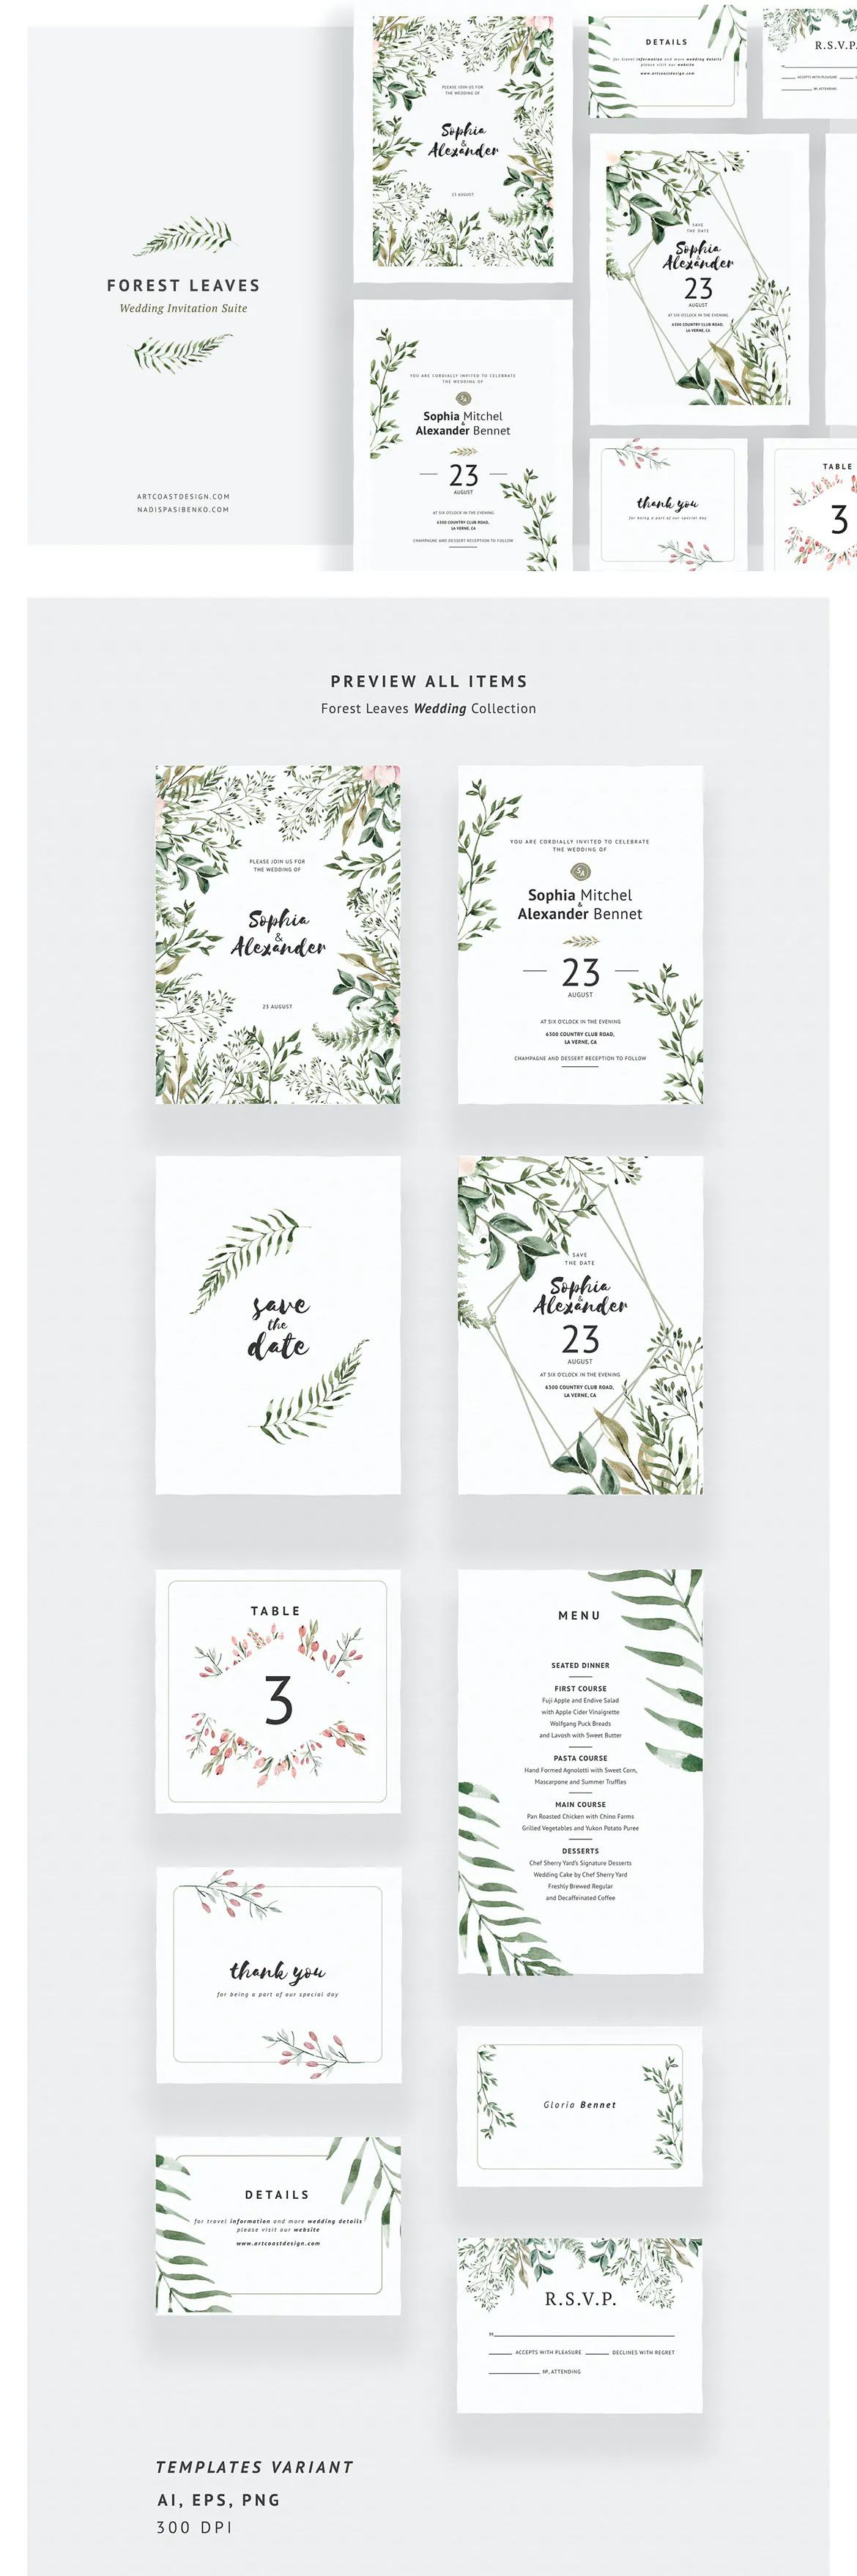 Forest Leaves Wedding Invitations In 2021 Wedding Invitation Card Template Wedding Leaves Wedding Invitations